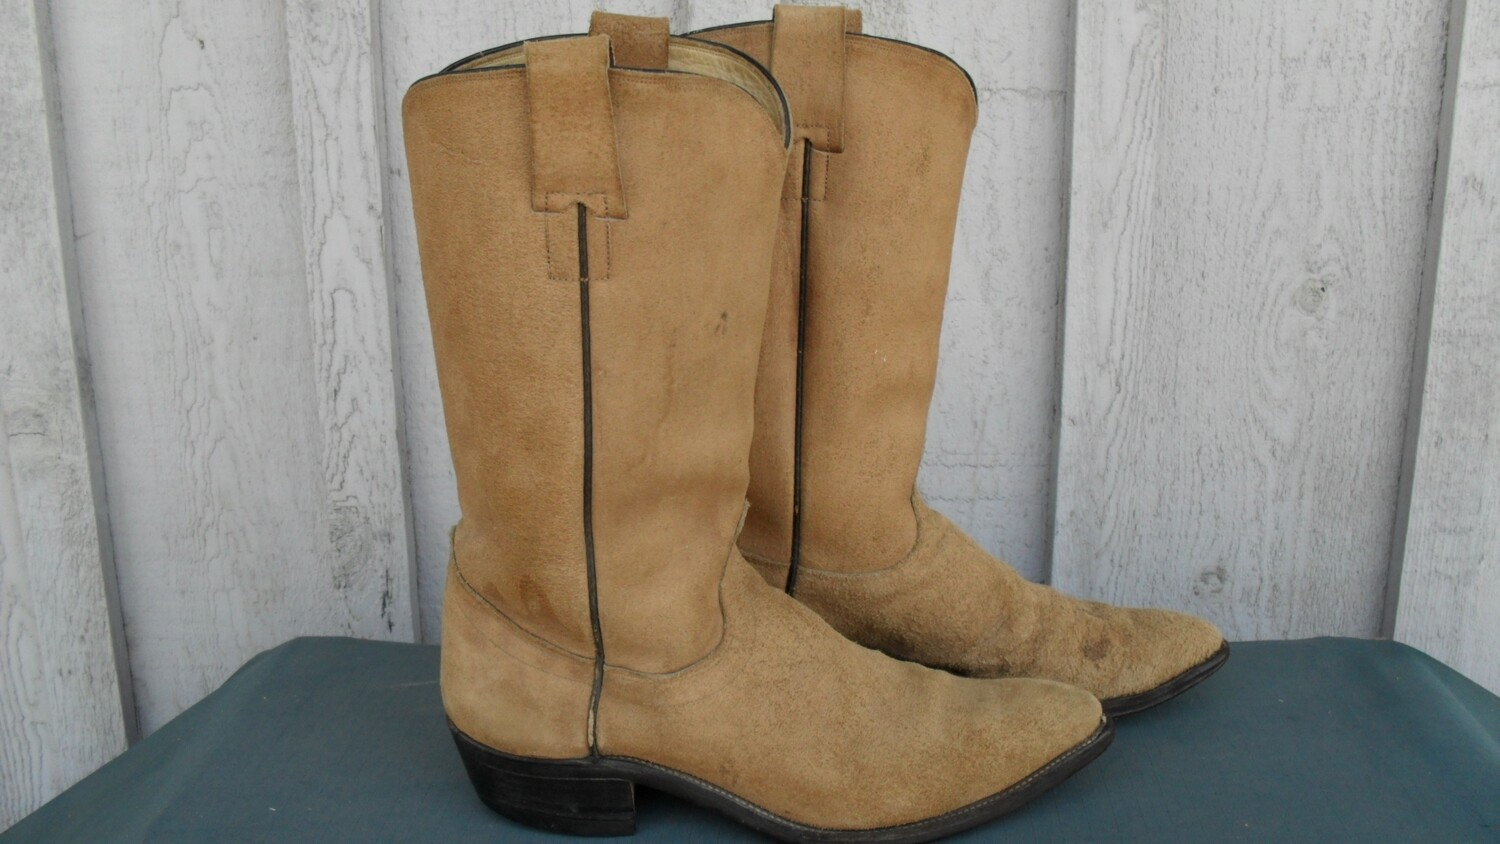 """Hyer boots that Dierks Bentley would undoubtedly """"Hold On"""" to!"""